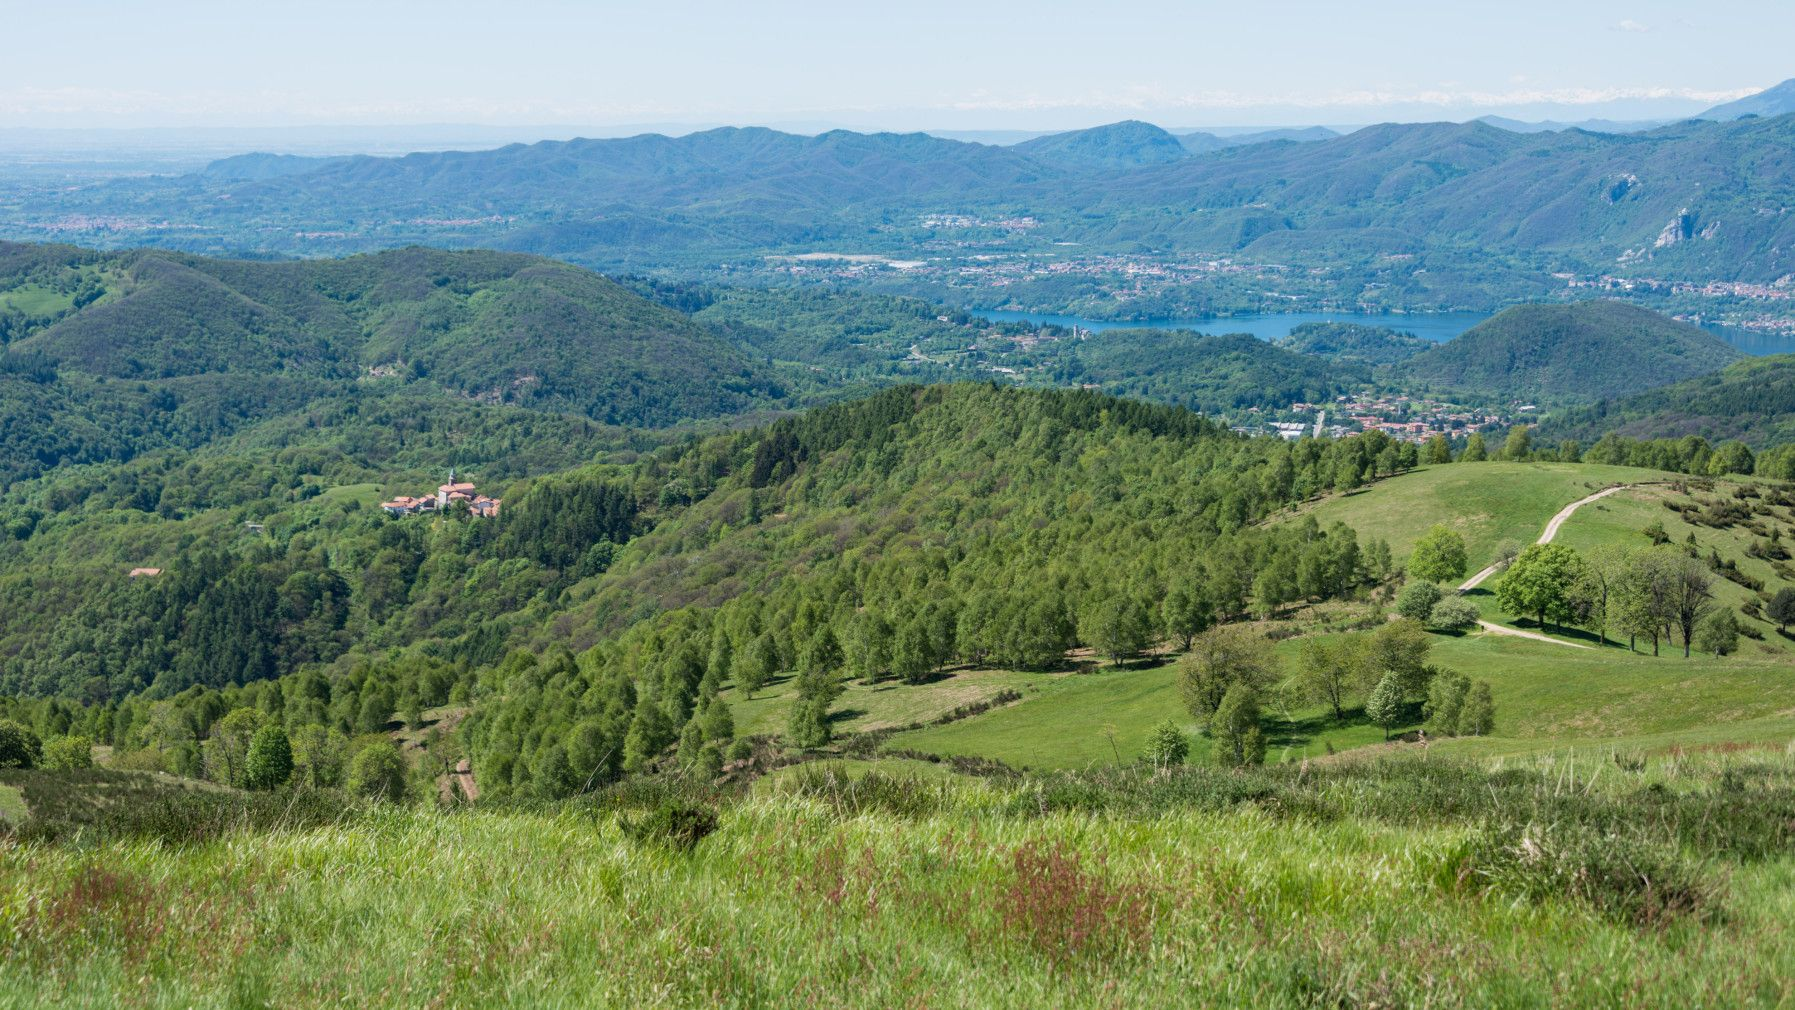 Coiromonte and Lage d'Orta